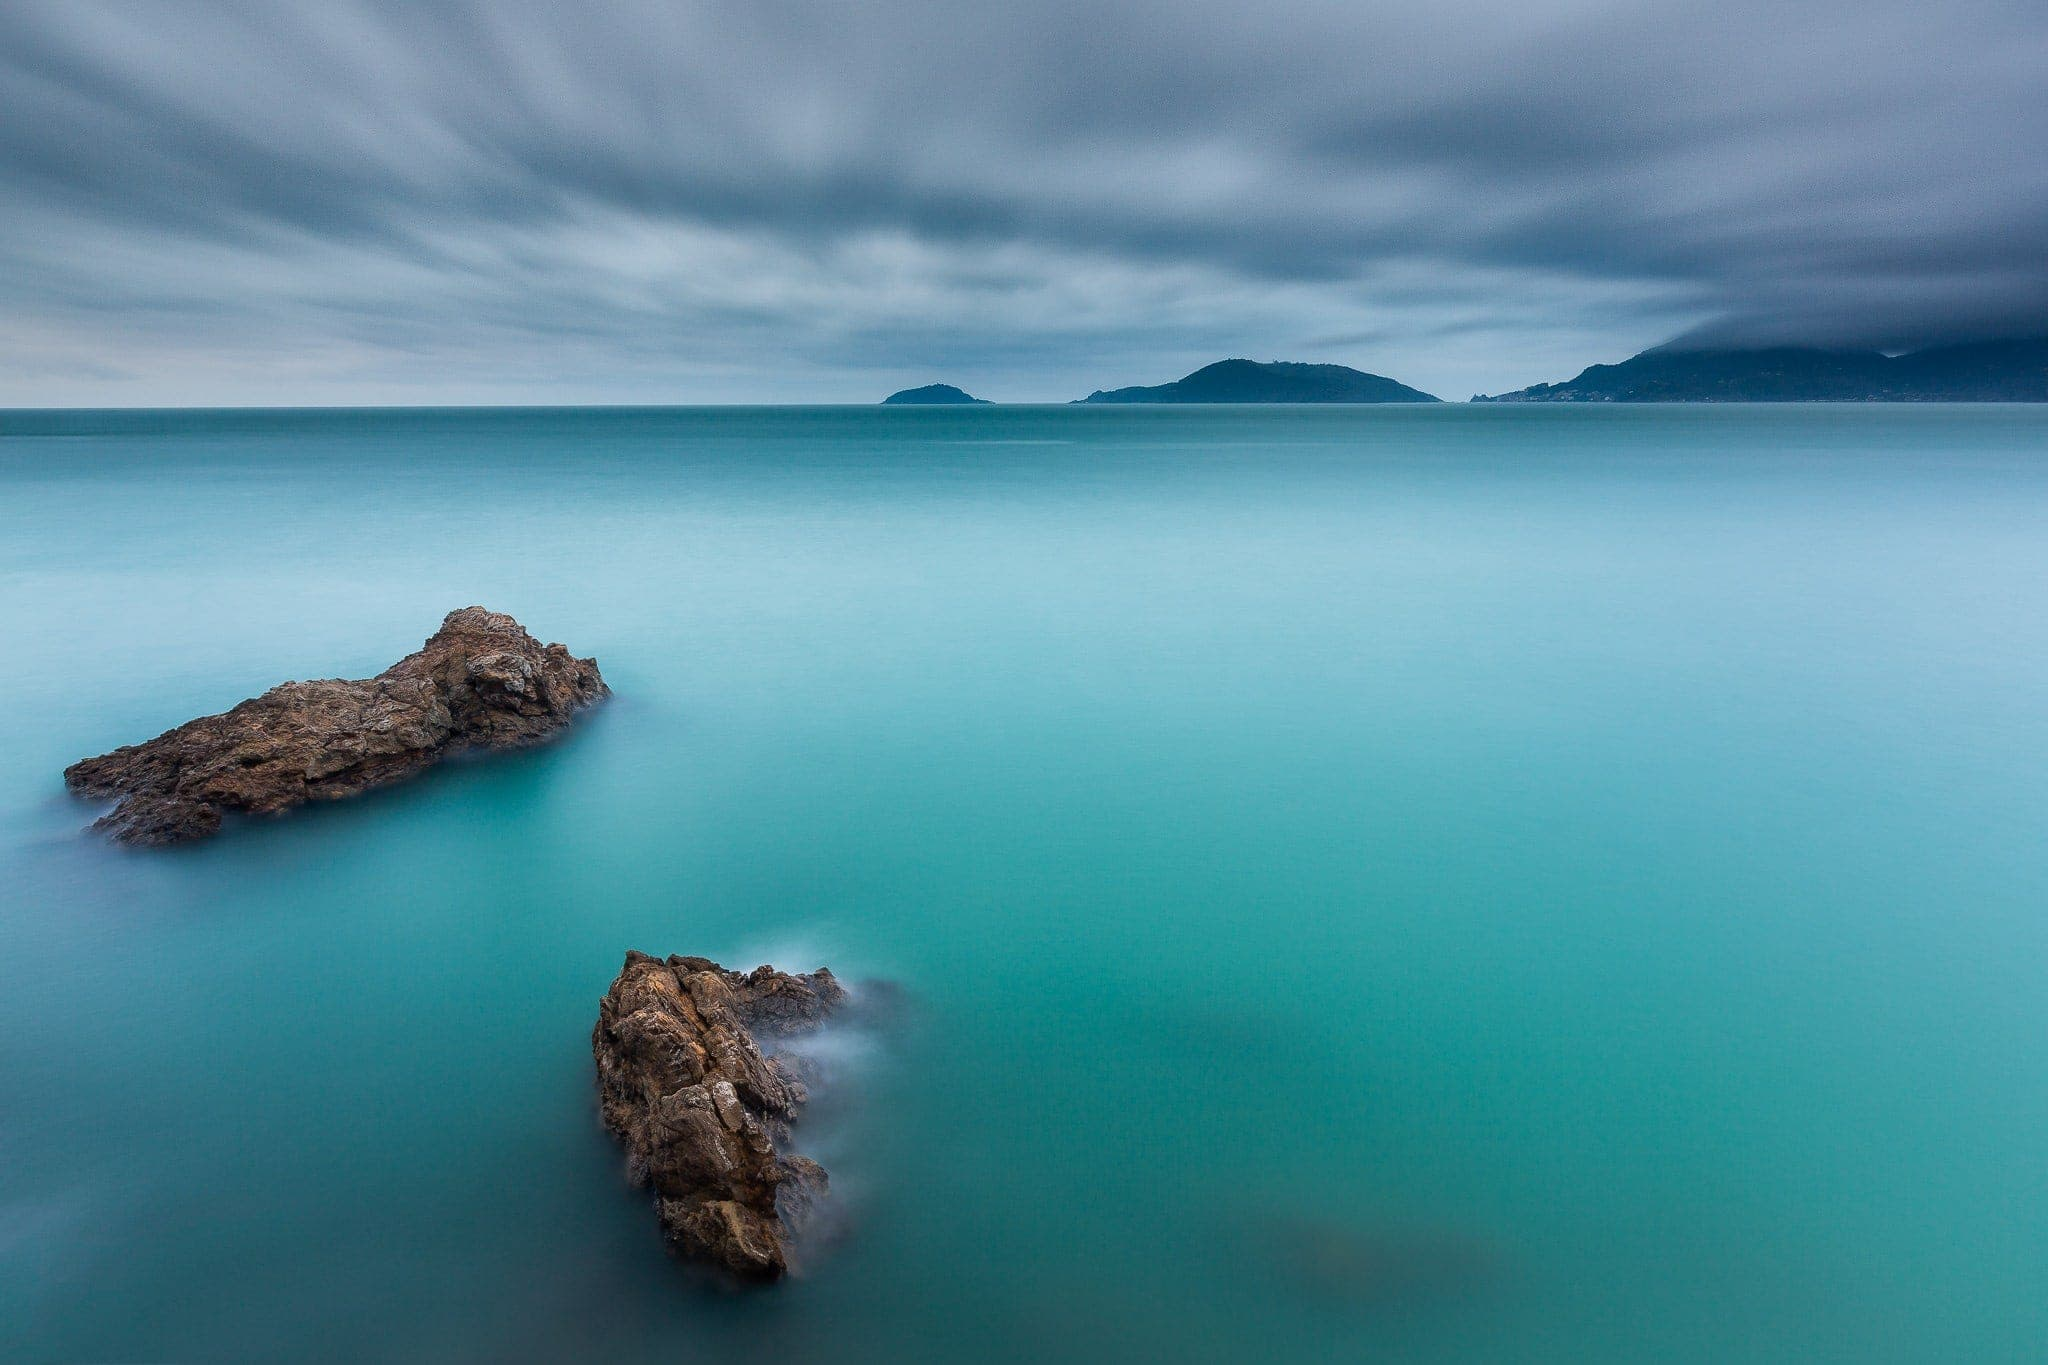 Francesco Gola Seascape Landscape Photography Long Exposure Lerici Gulf Poets Storm Italy